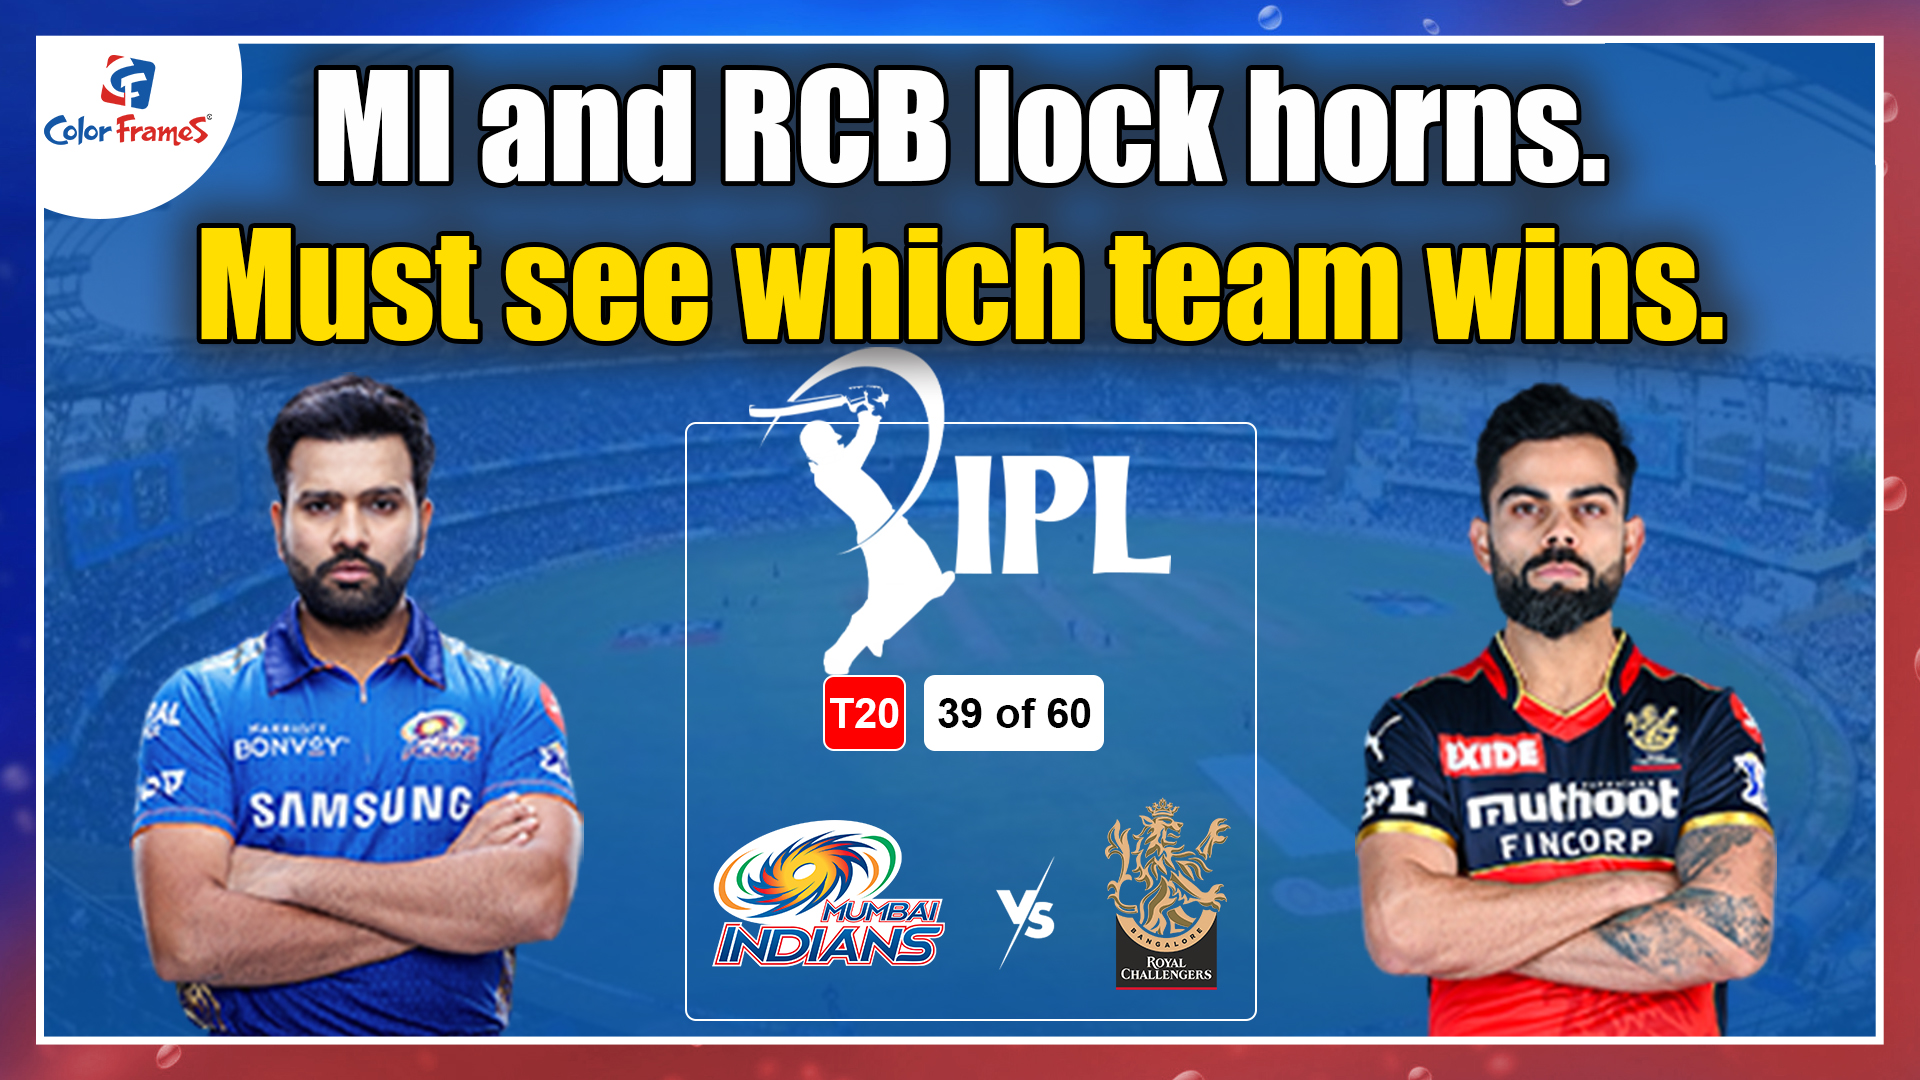 MI and RCB lock horns. Must see which team wins.